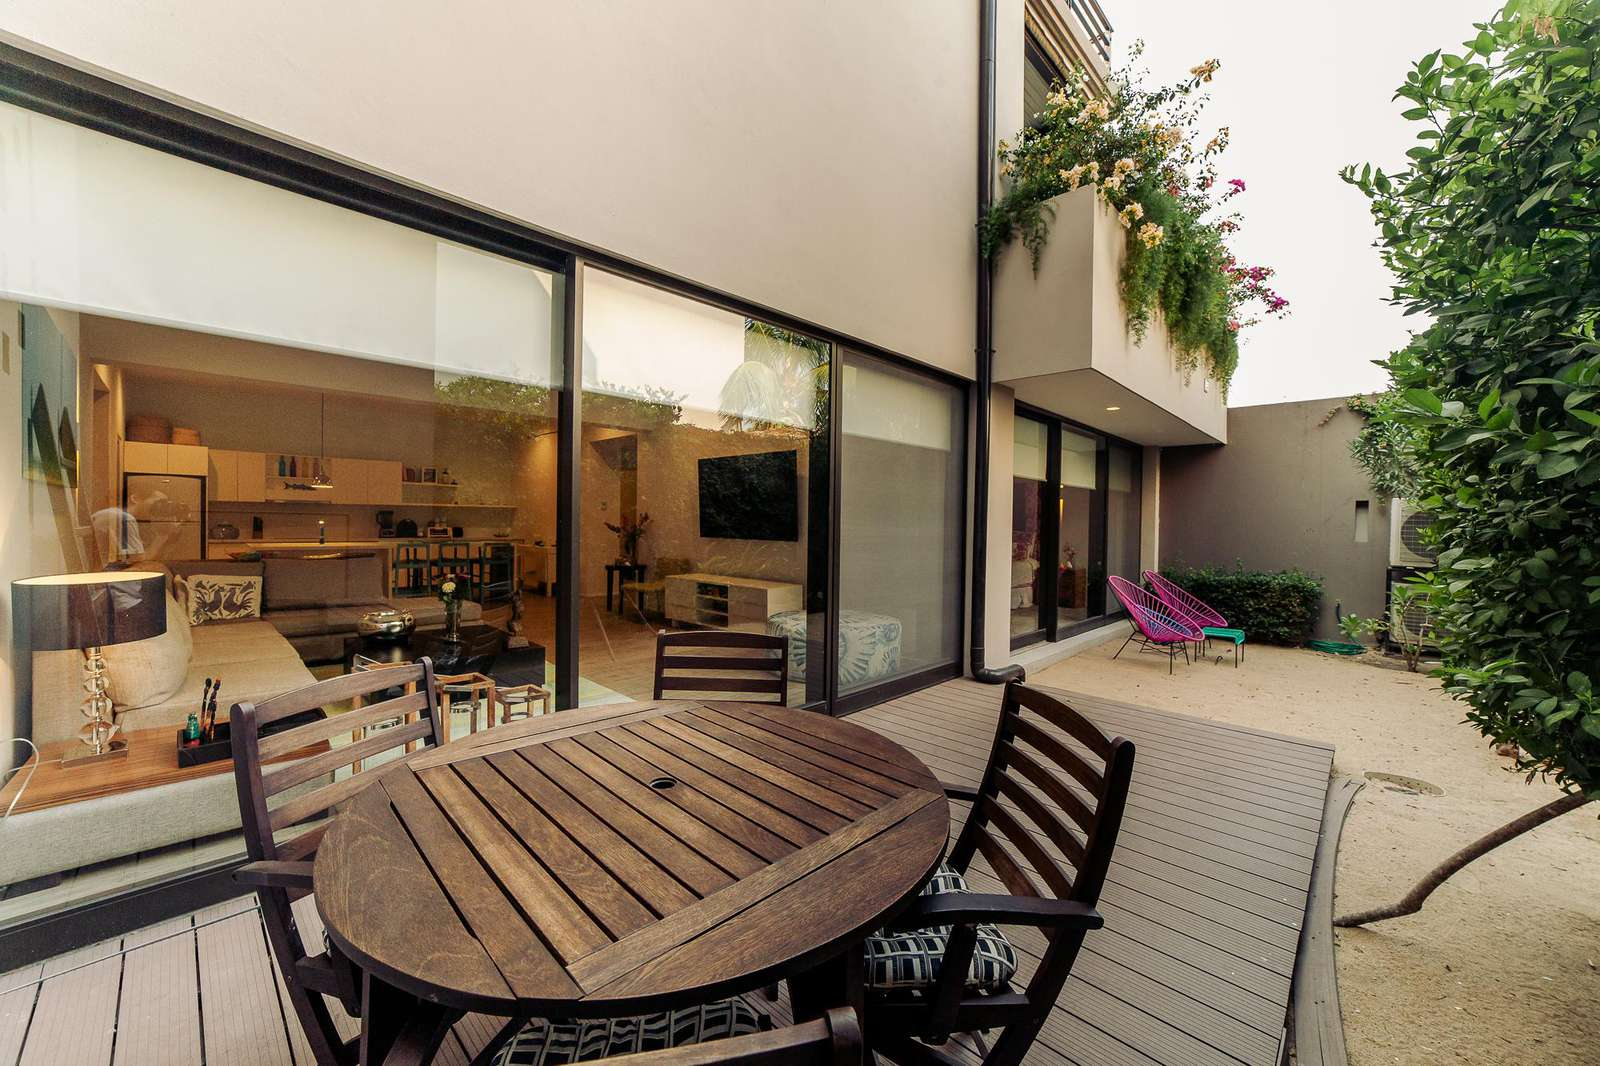 Relax in your private garden terrace